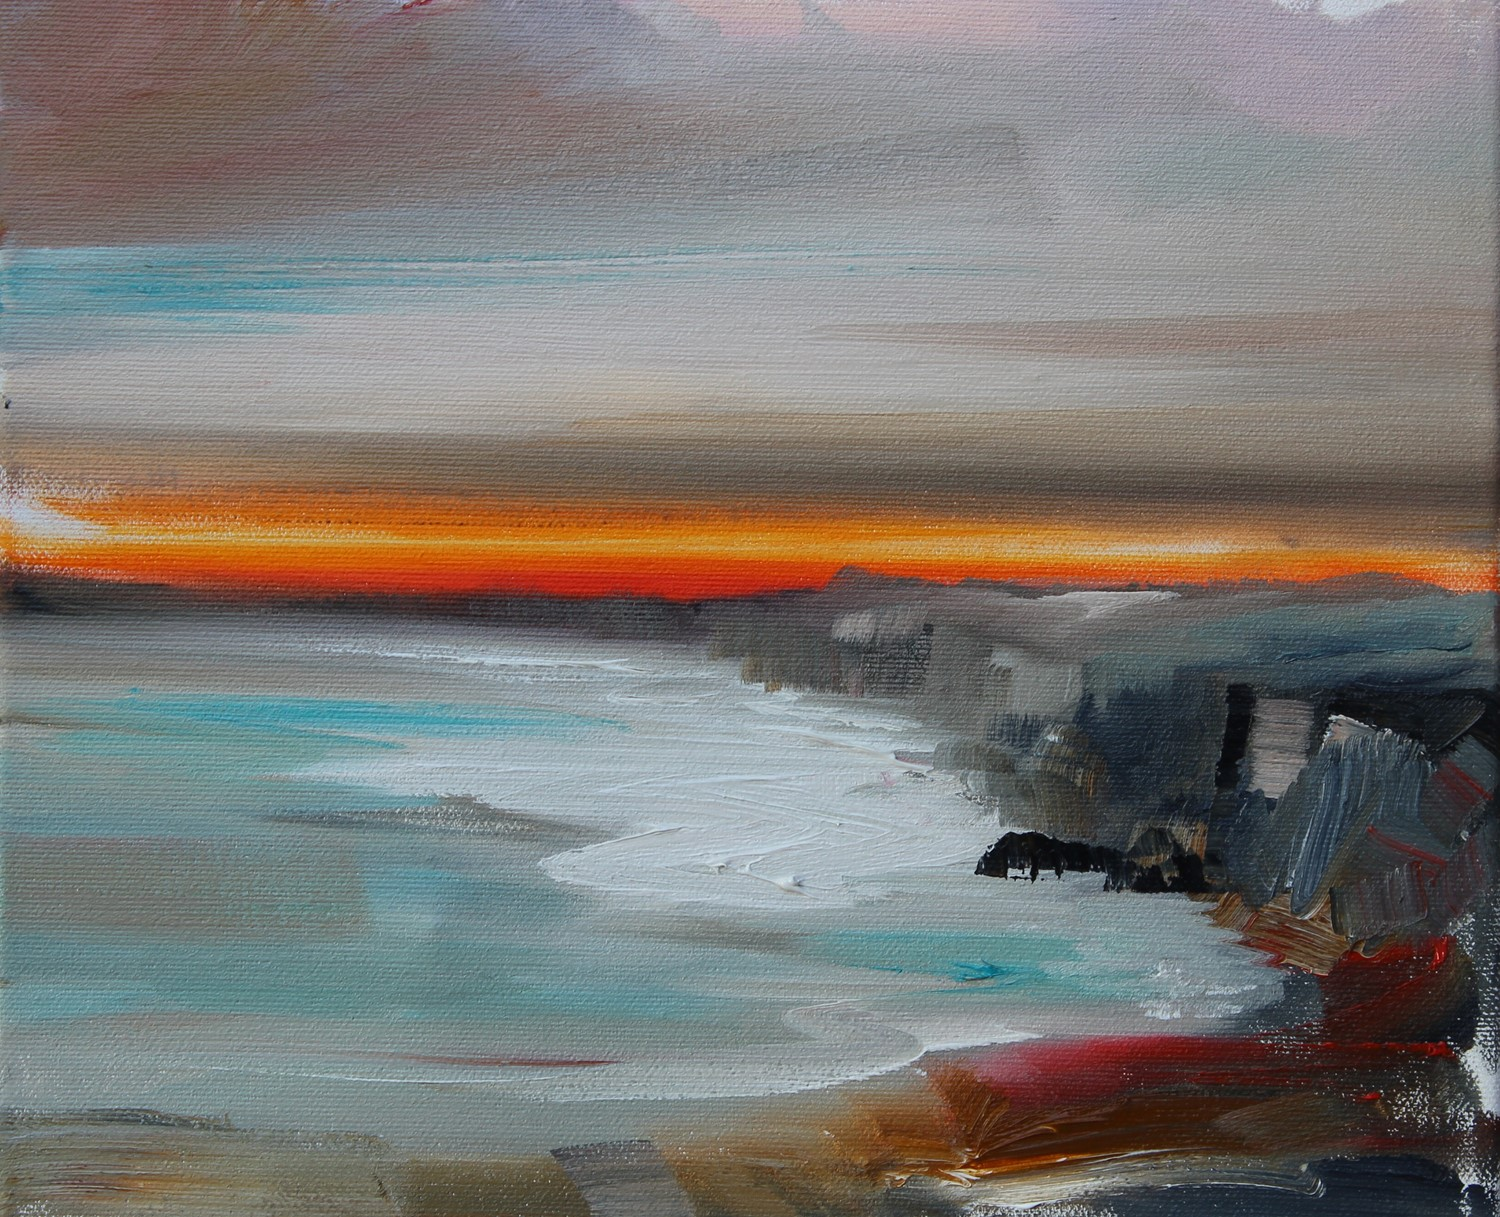 'From the Cliffs to the Shore ' by artist Rosanne Barr